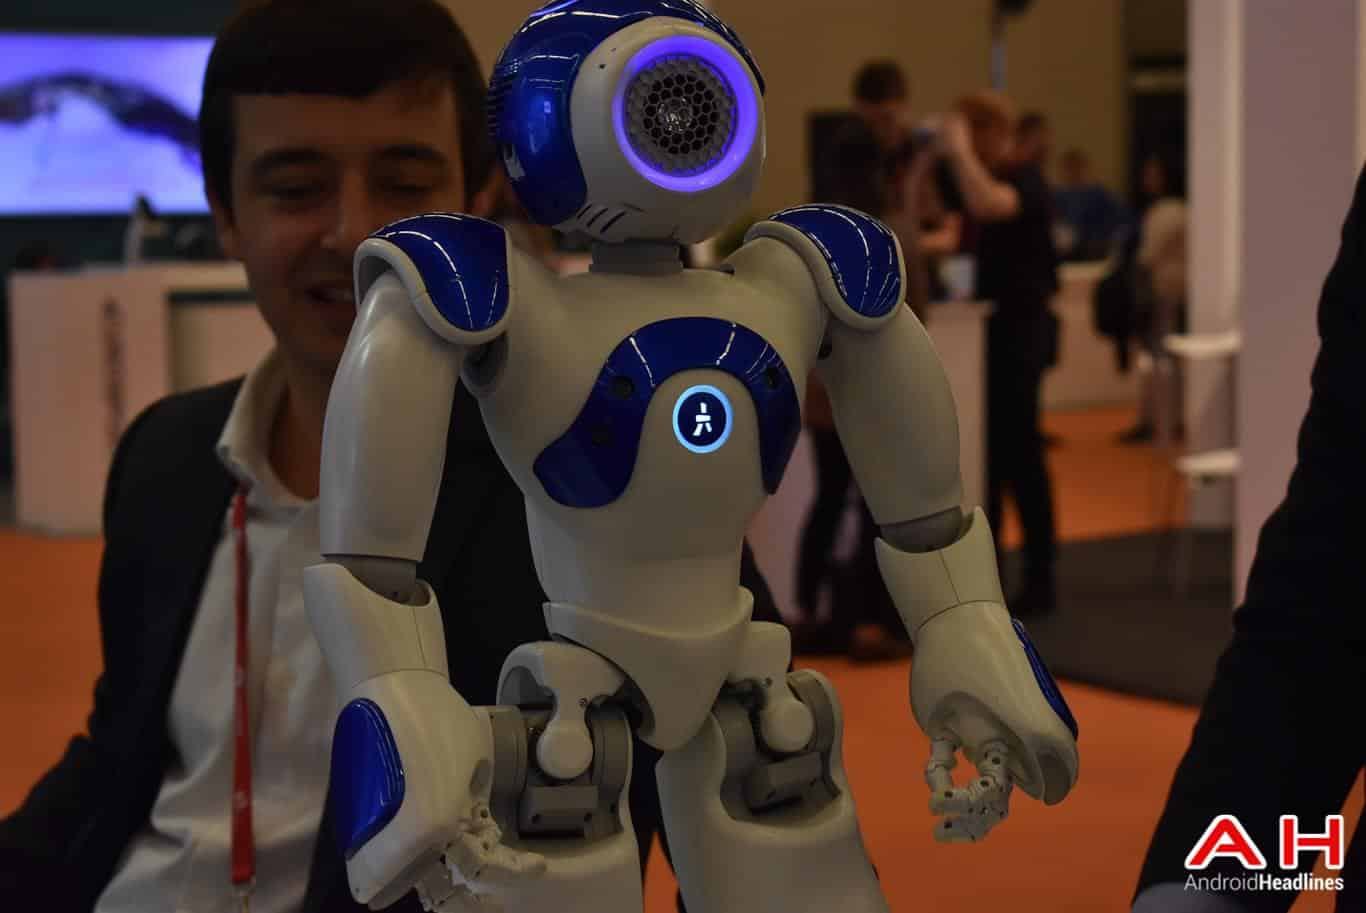 SoftBank Pepper Robot AH 14